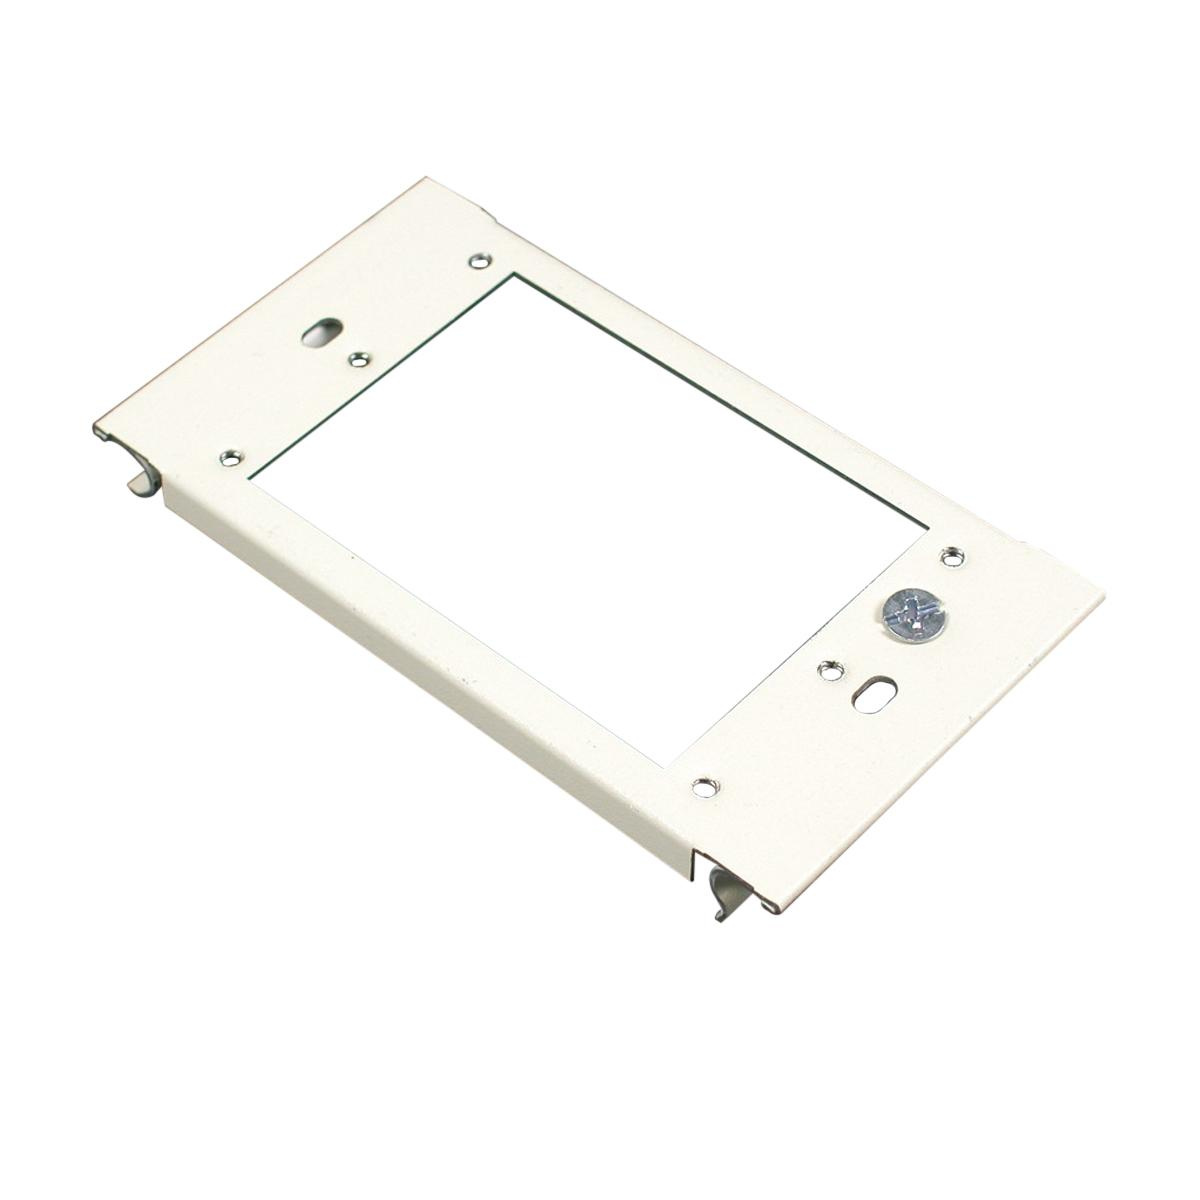 wiremold v6007c-1 1-gang device plate fitting steel ivory for use with  6000® series multiple channel 2-piece steel surface raceway - raceway boxes  & covers